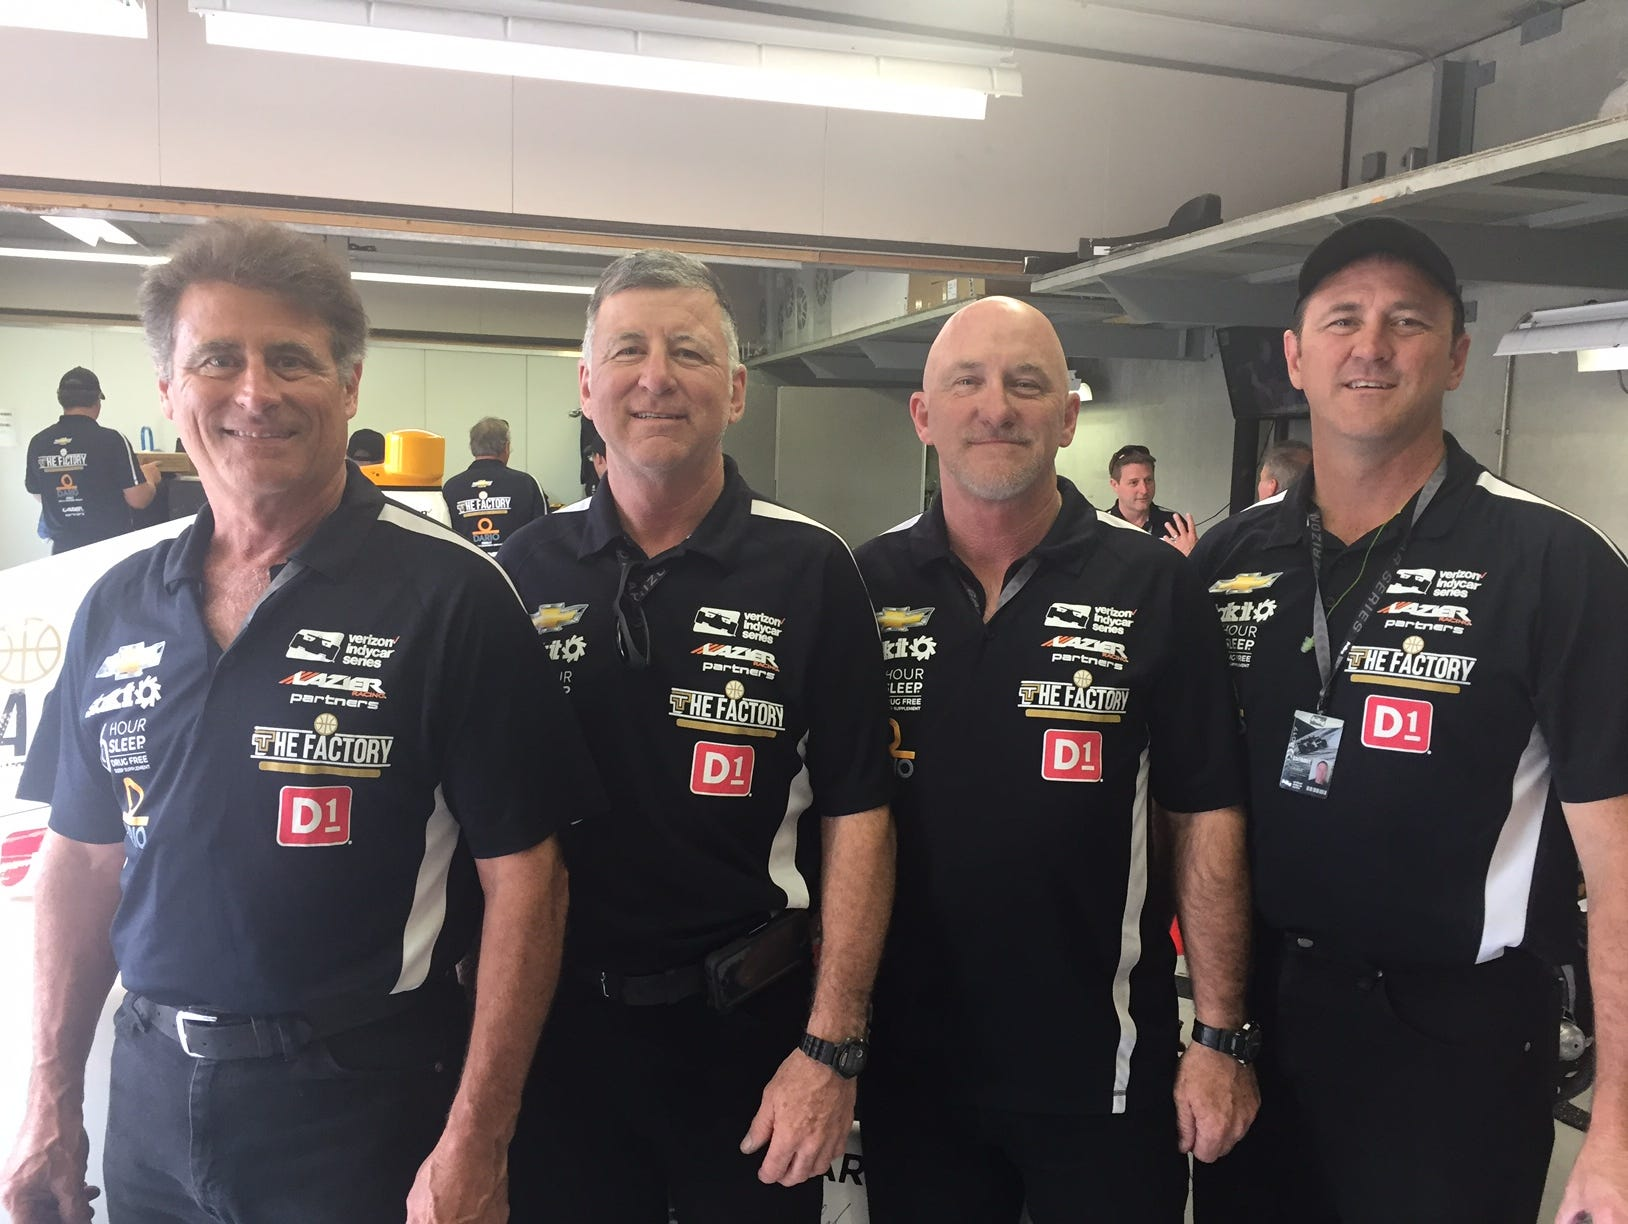 Most of Buddy Lazier's pit crew. The Caudle brothers from Irving, Texas. All firemen (left to right): Jim, 57; Bob, 55; Ken, 53; Craig, 46.